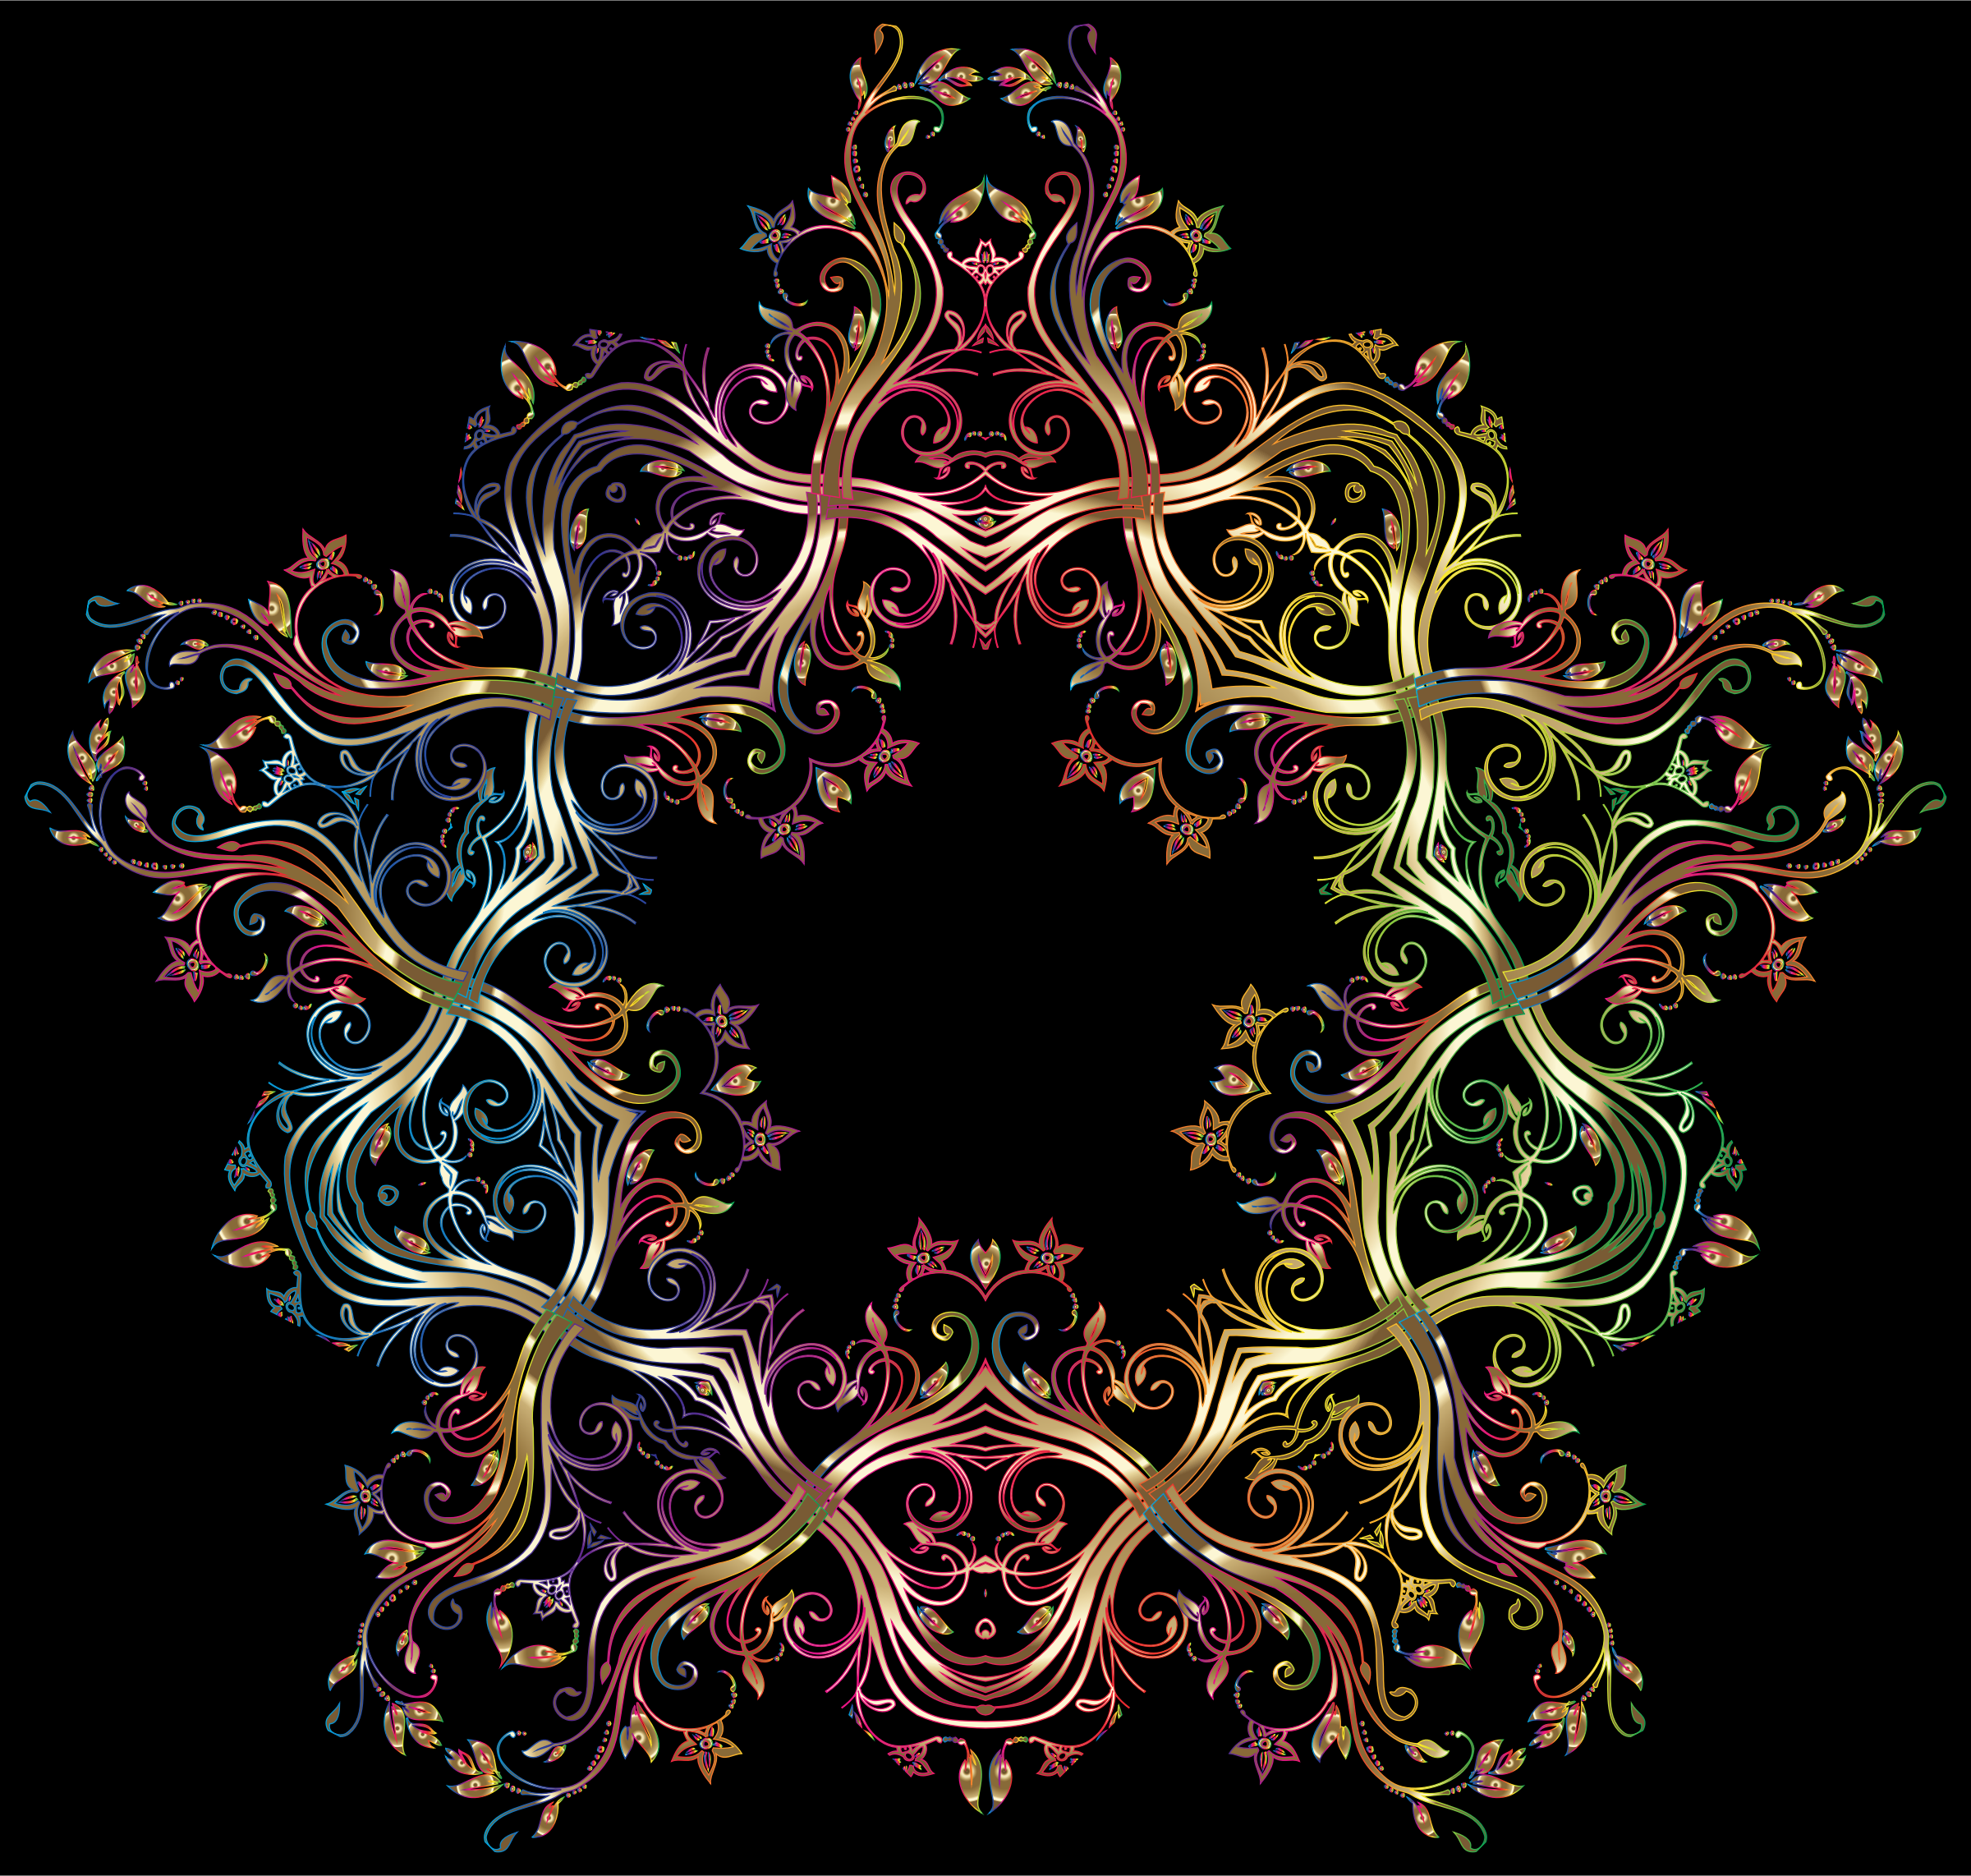 Chromatic Gold Flourish Ornament 5 by GDJ